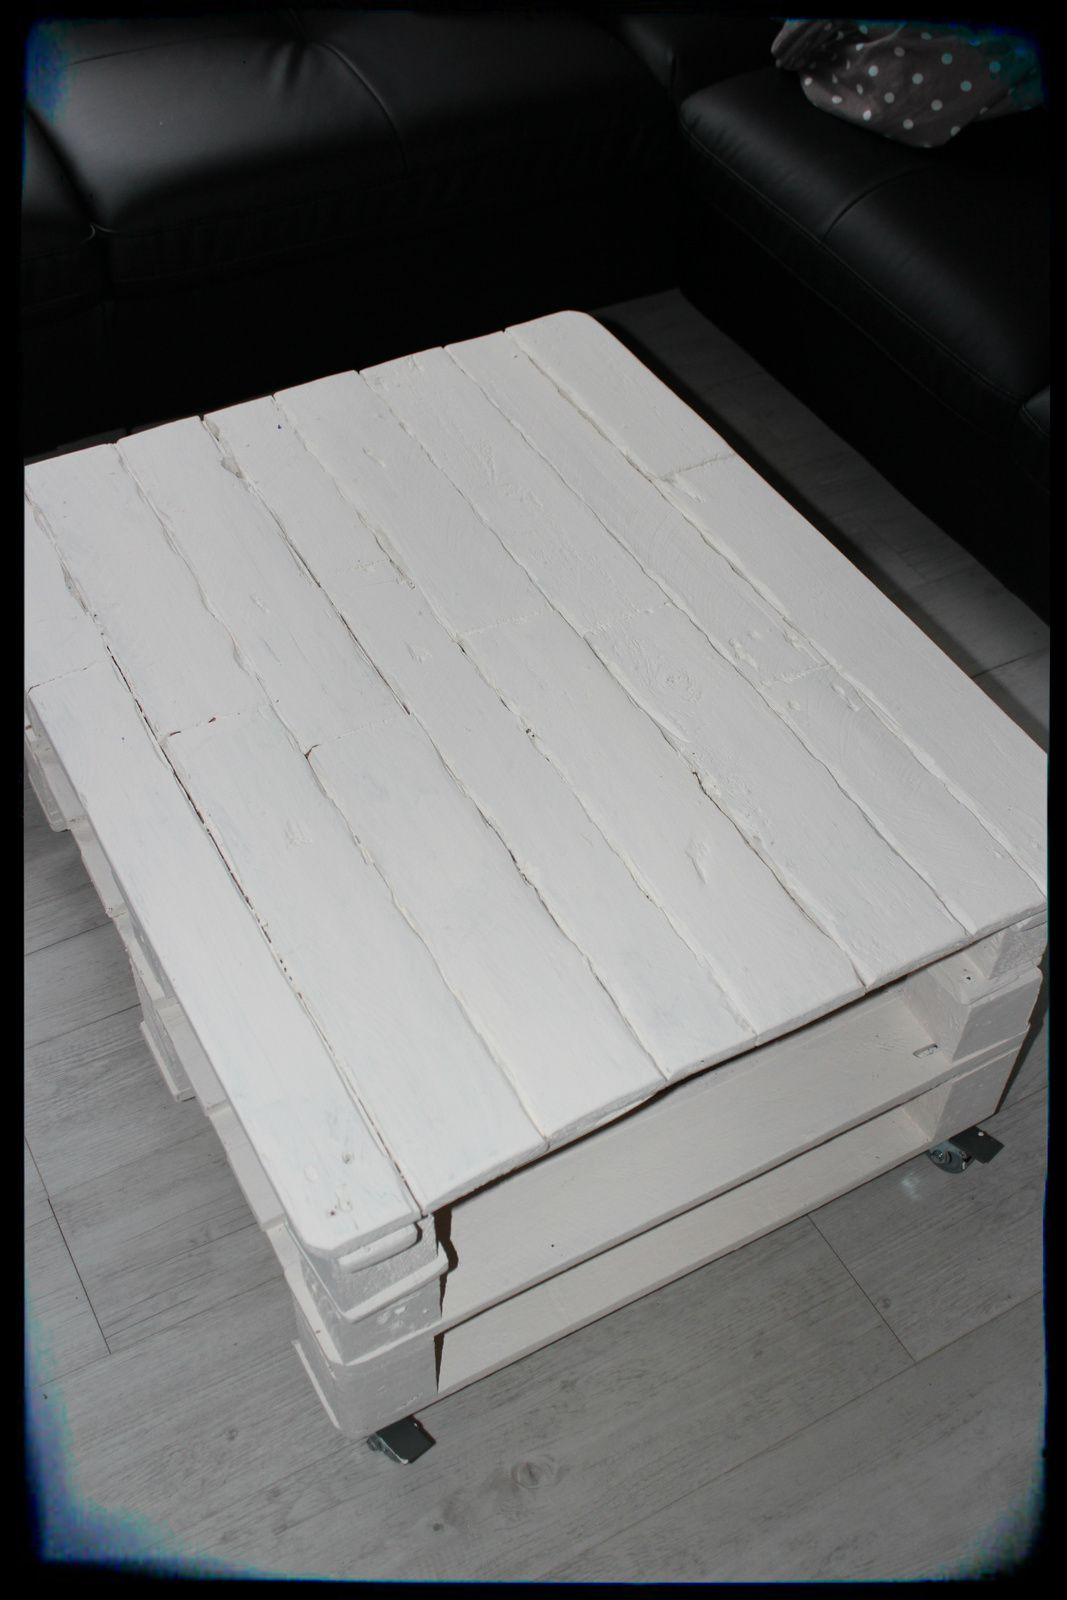 Relooking de ma palett 39 table basse l 39 univers de garfield59 - Table basse palette blanche ...